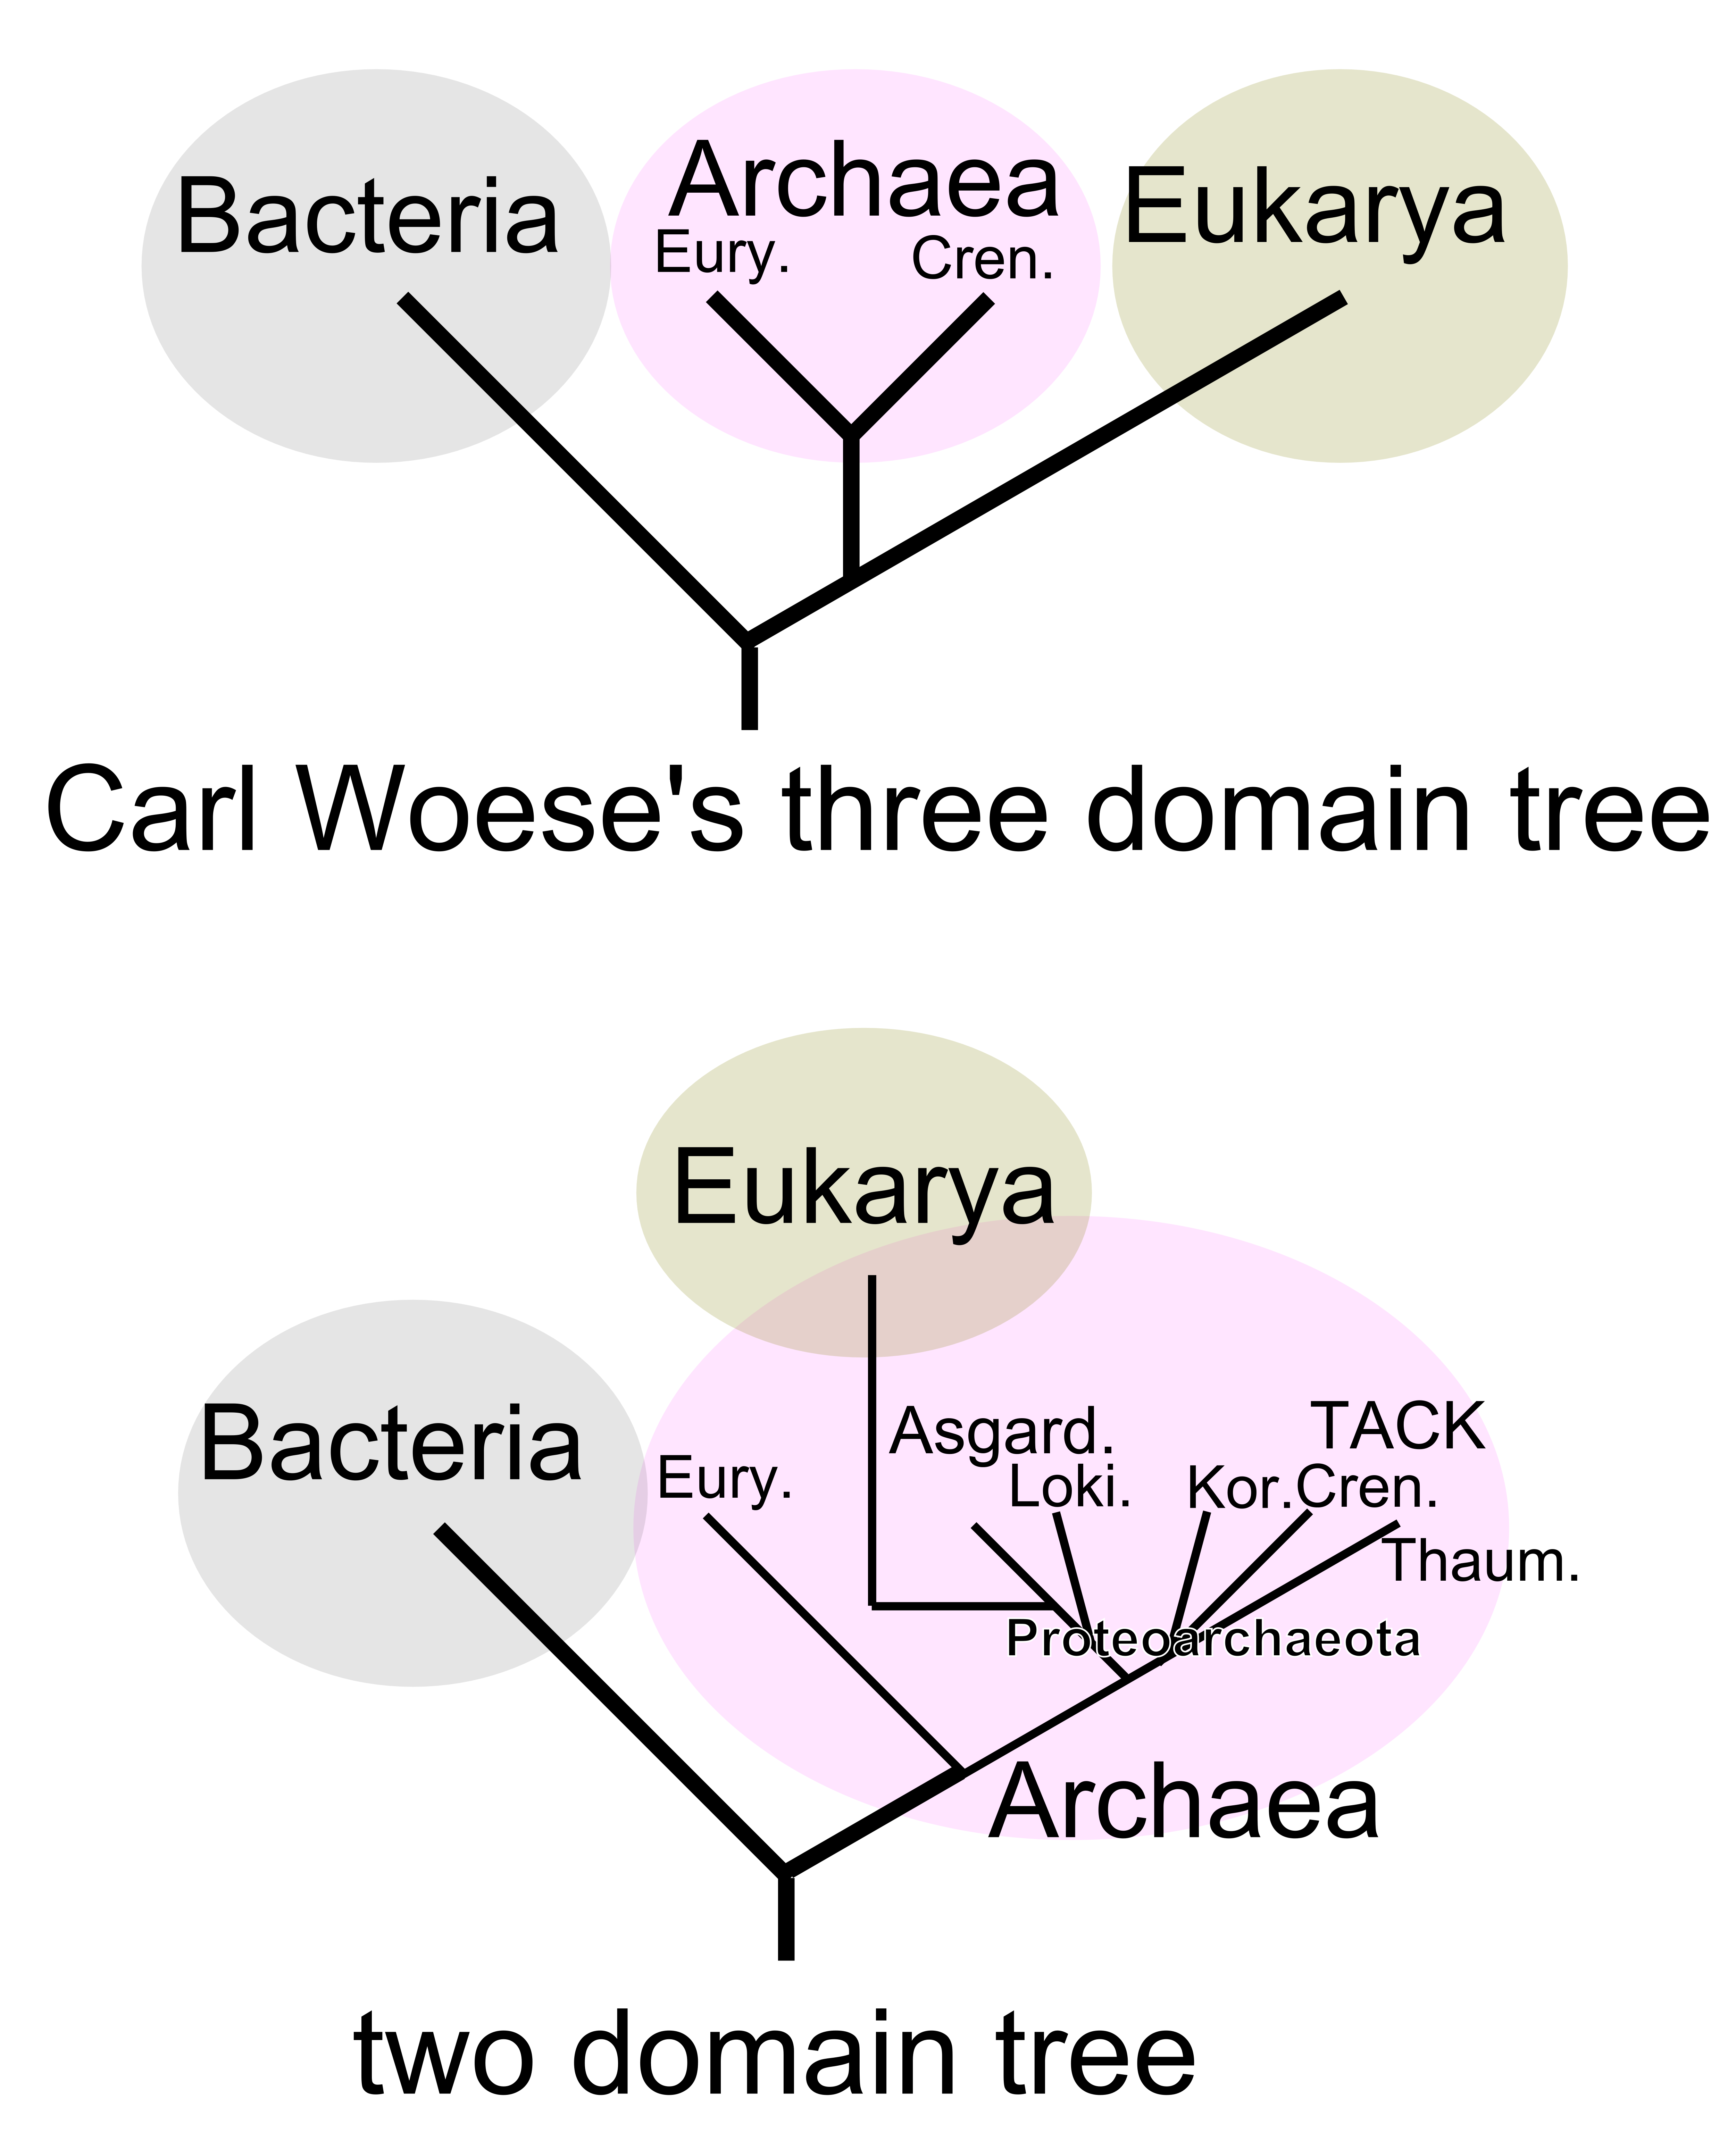 Figure depicting a 2-domain tree of life, in comparison to Woese's 3-domain tree of life. In the 2-domain tree, the eukaryotes are descended from the archaeal domain, rather than being a sister domain.